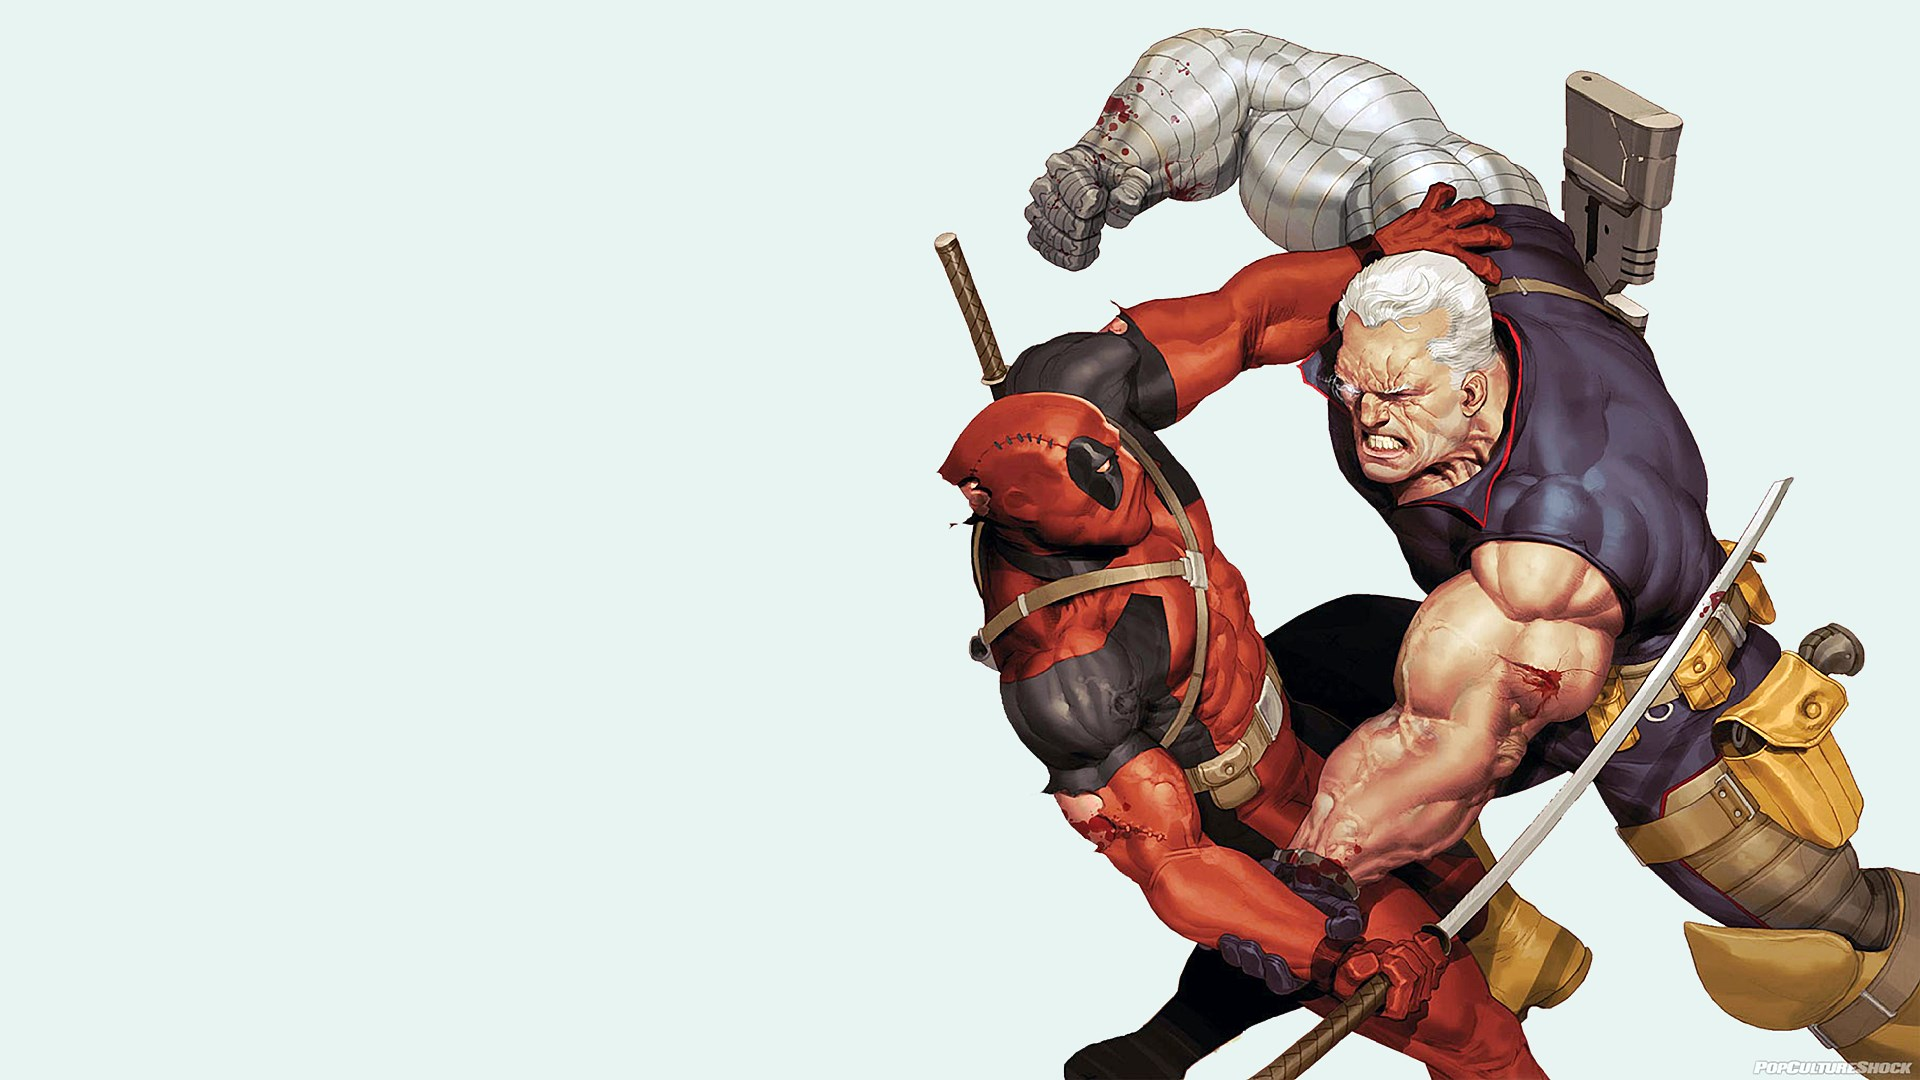 1920x1080-high-resolution-widescreen-deadpool-wallpaper-wpc900890